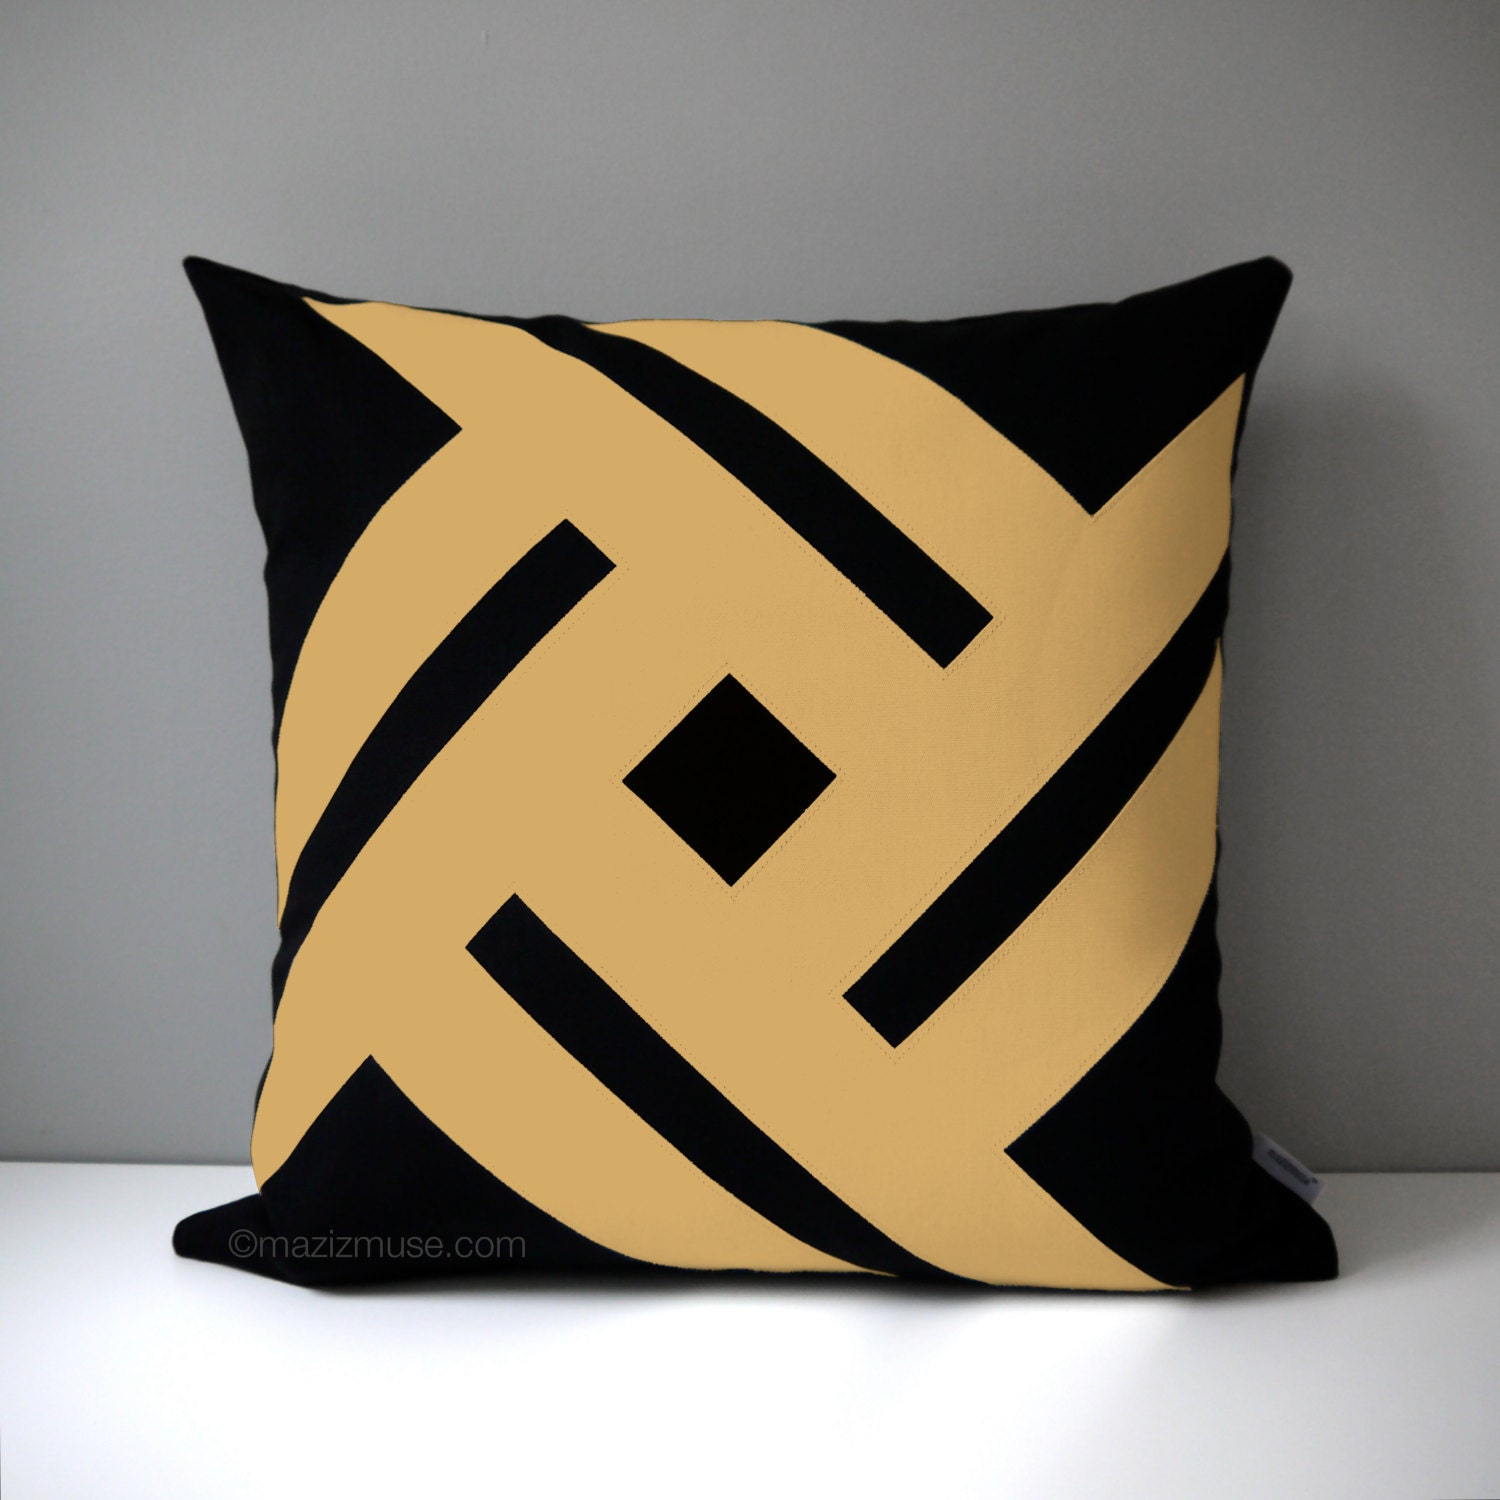 Black & Gold Outdoor Pillow Case Modern Pillow Cover